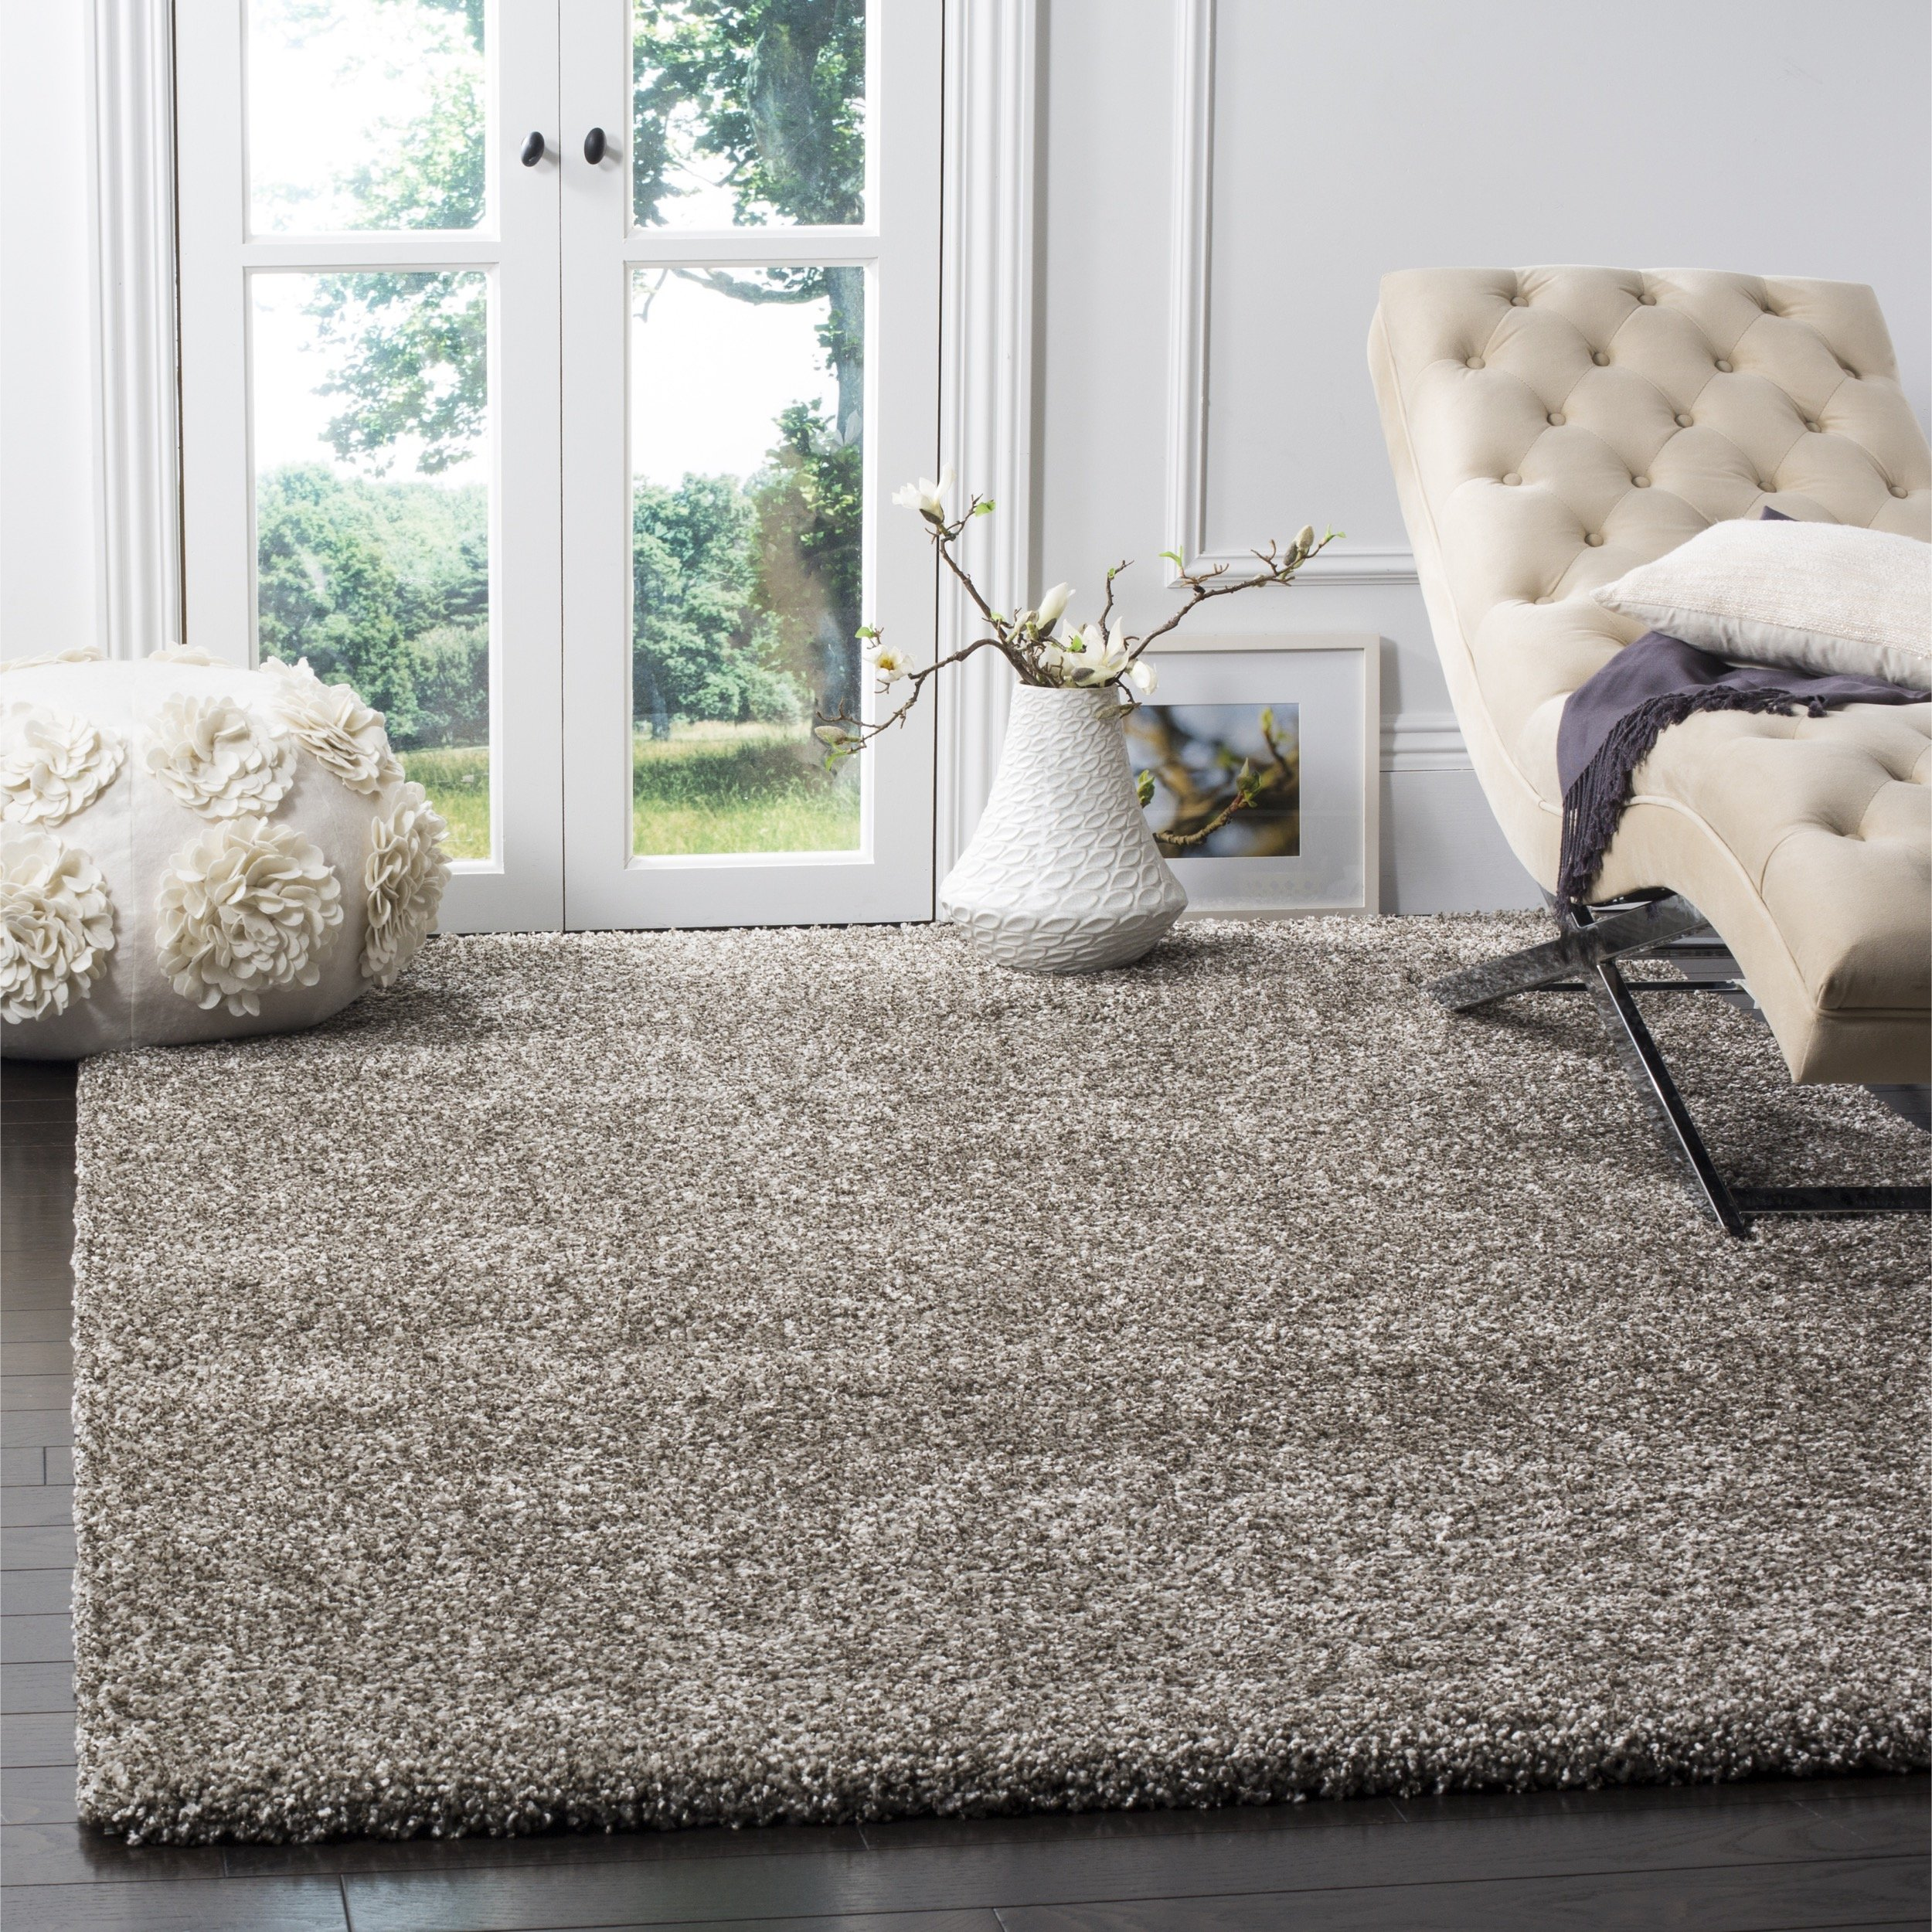 Safavieh Milan Shag Collection SG180-8080 Grey Square Area Rug (7' Square)